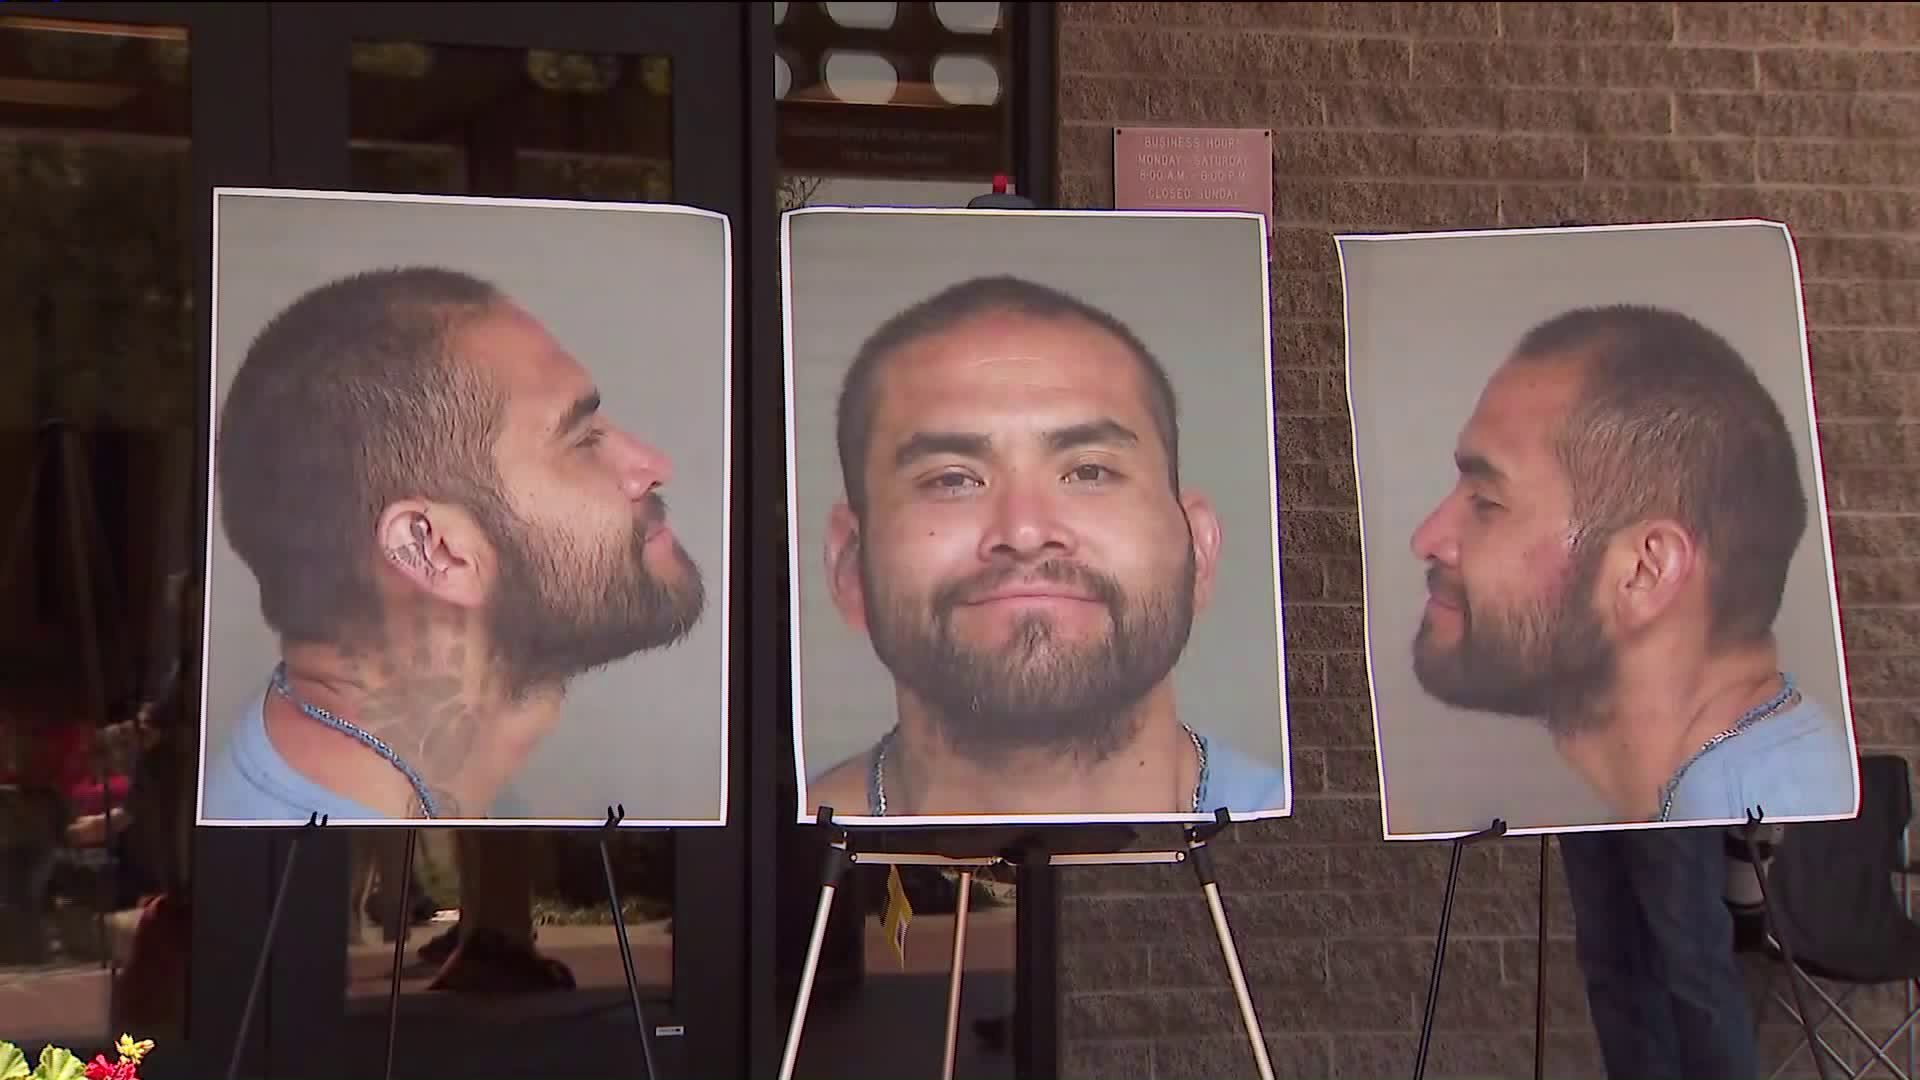 Zachary Castaneda, 33, is seen during a police news conference on Aug, 8, 2019. (Credit: KTLA)